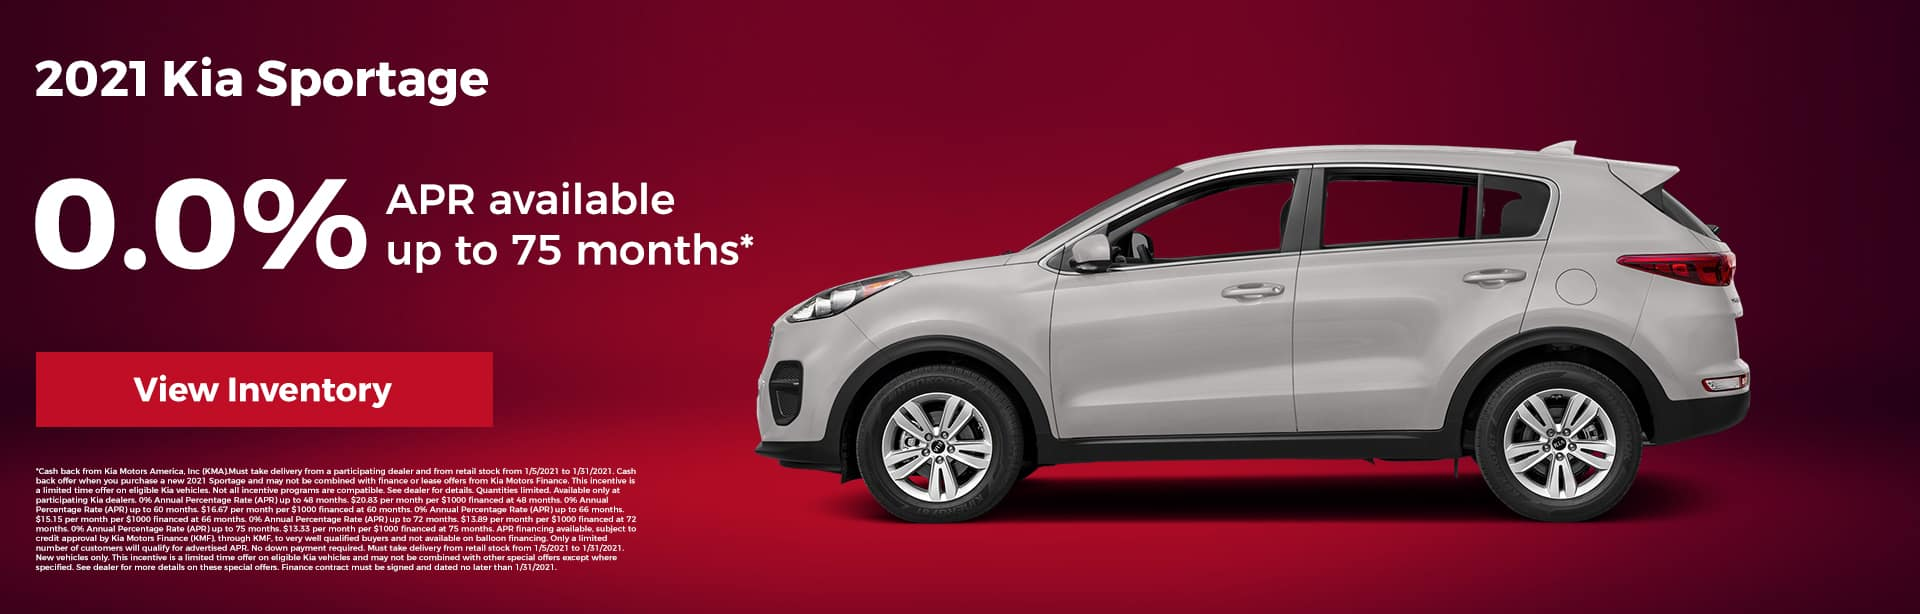 2021 Kia Sportage 0.0% APR financing up to 75 months*